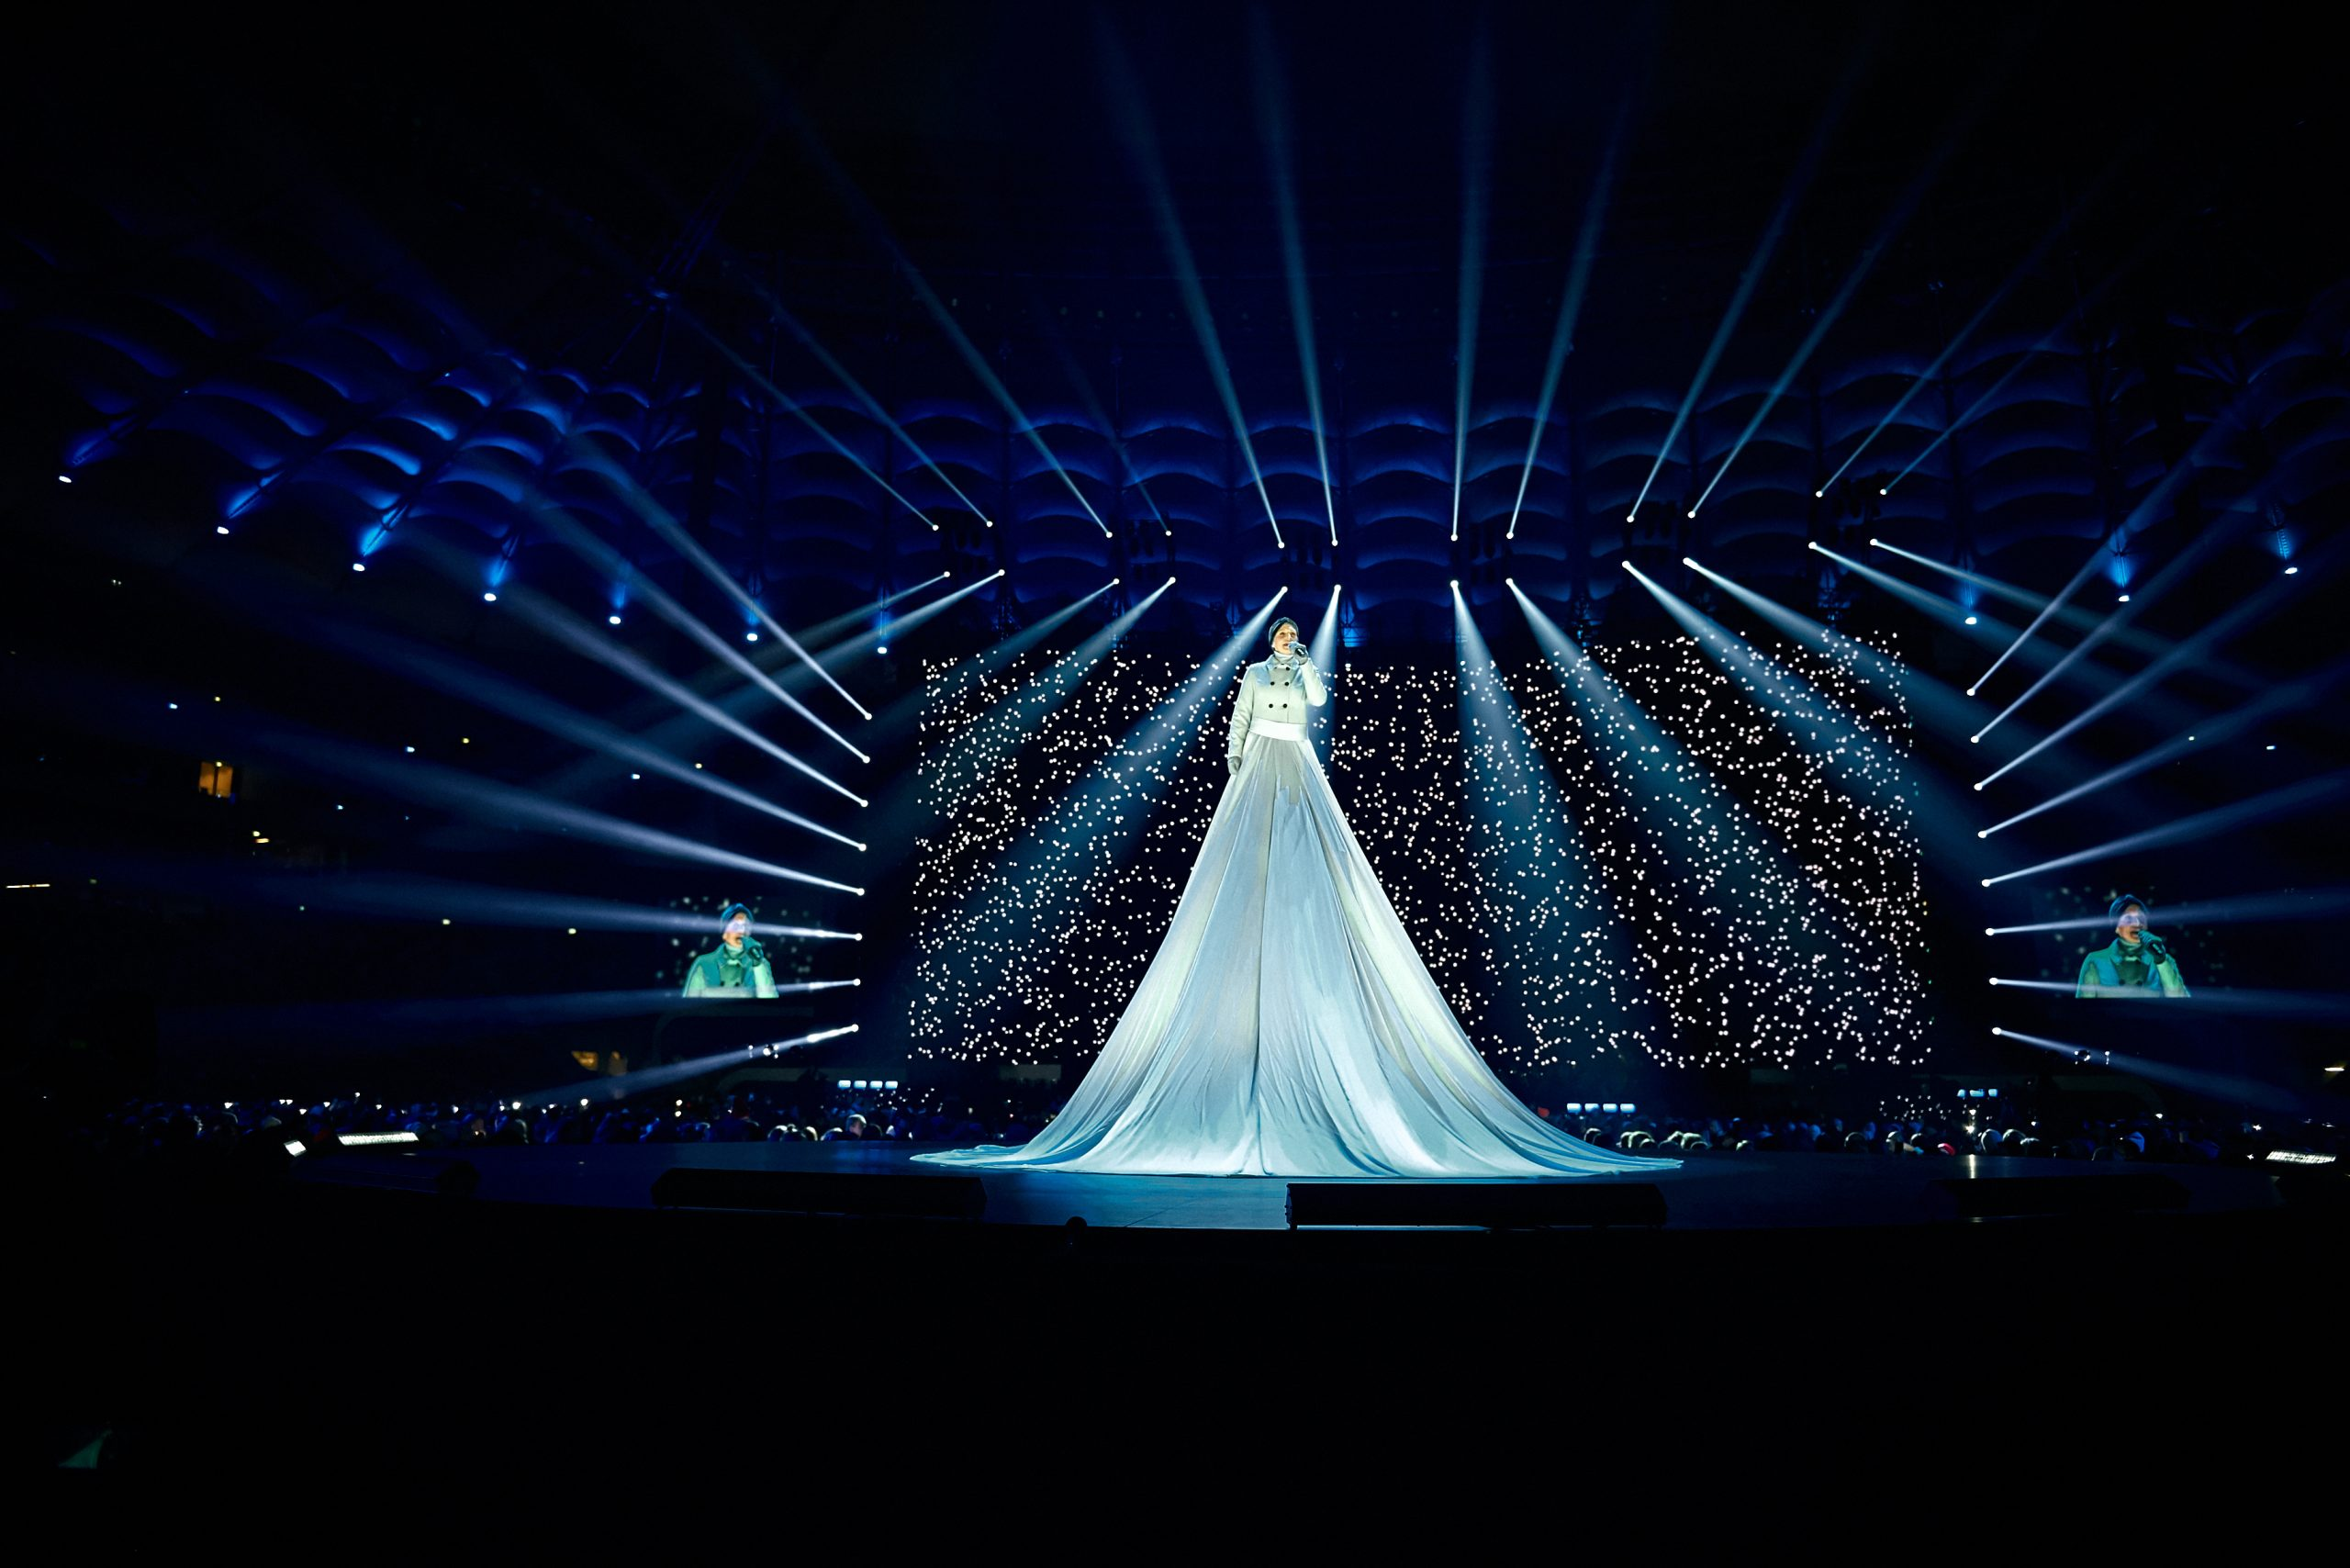 : A performer in a huge bright dress on a raised platform during a performance